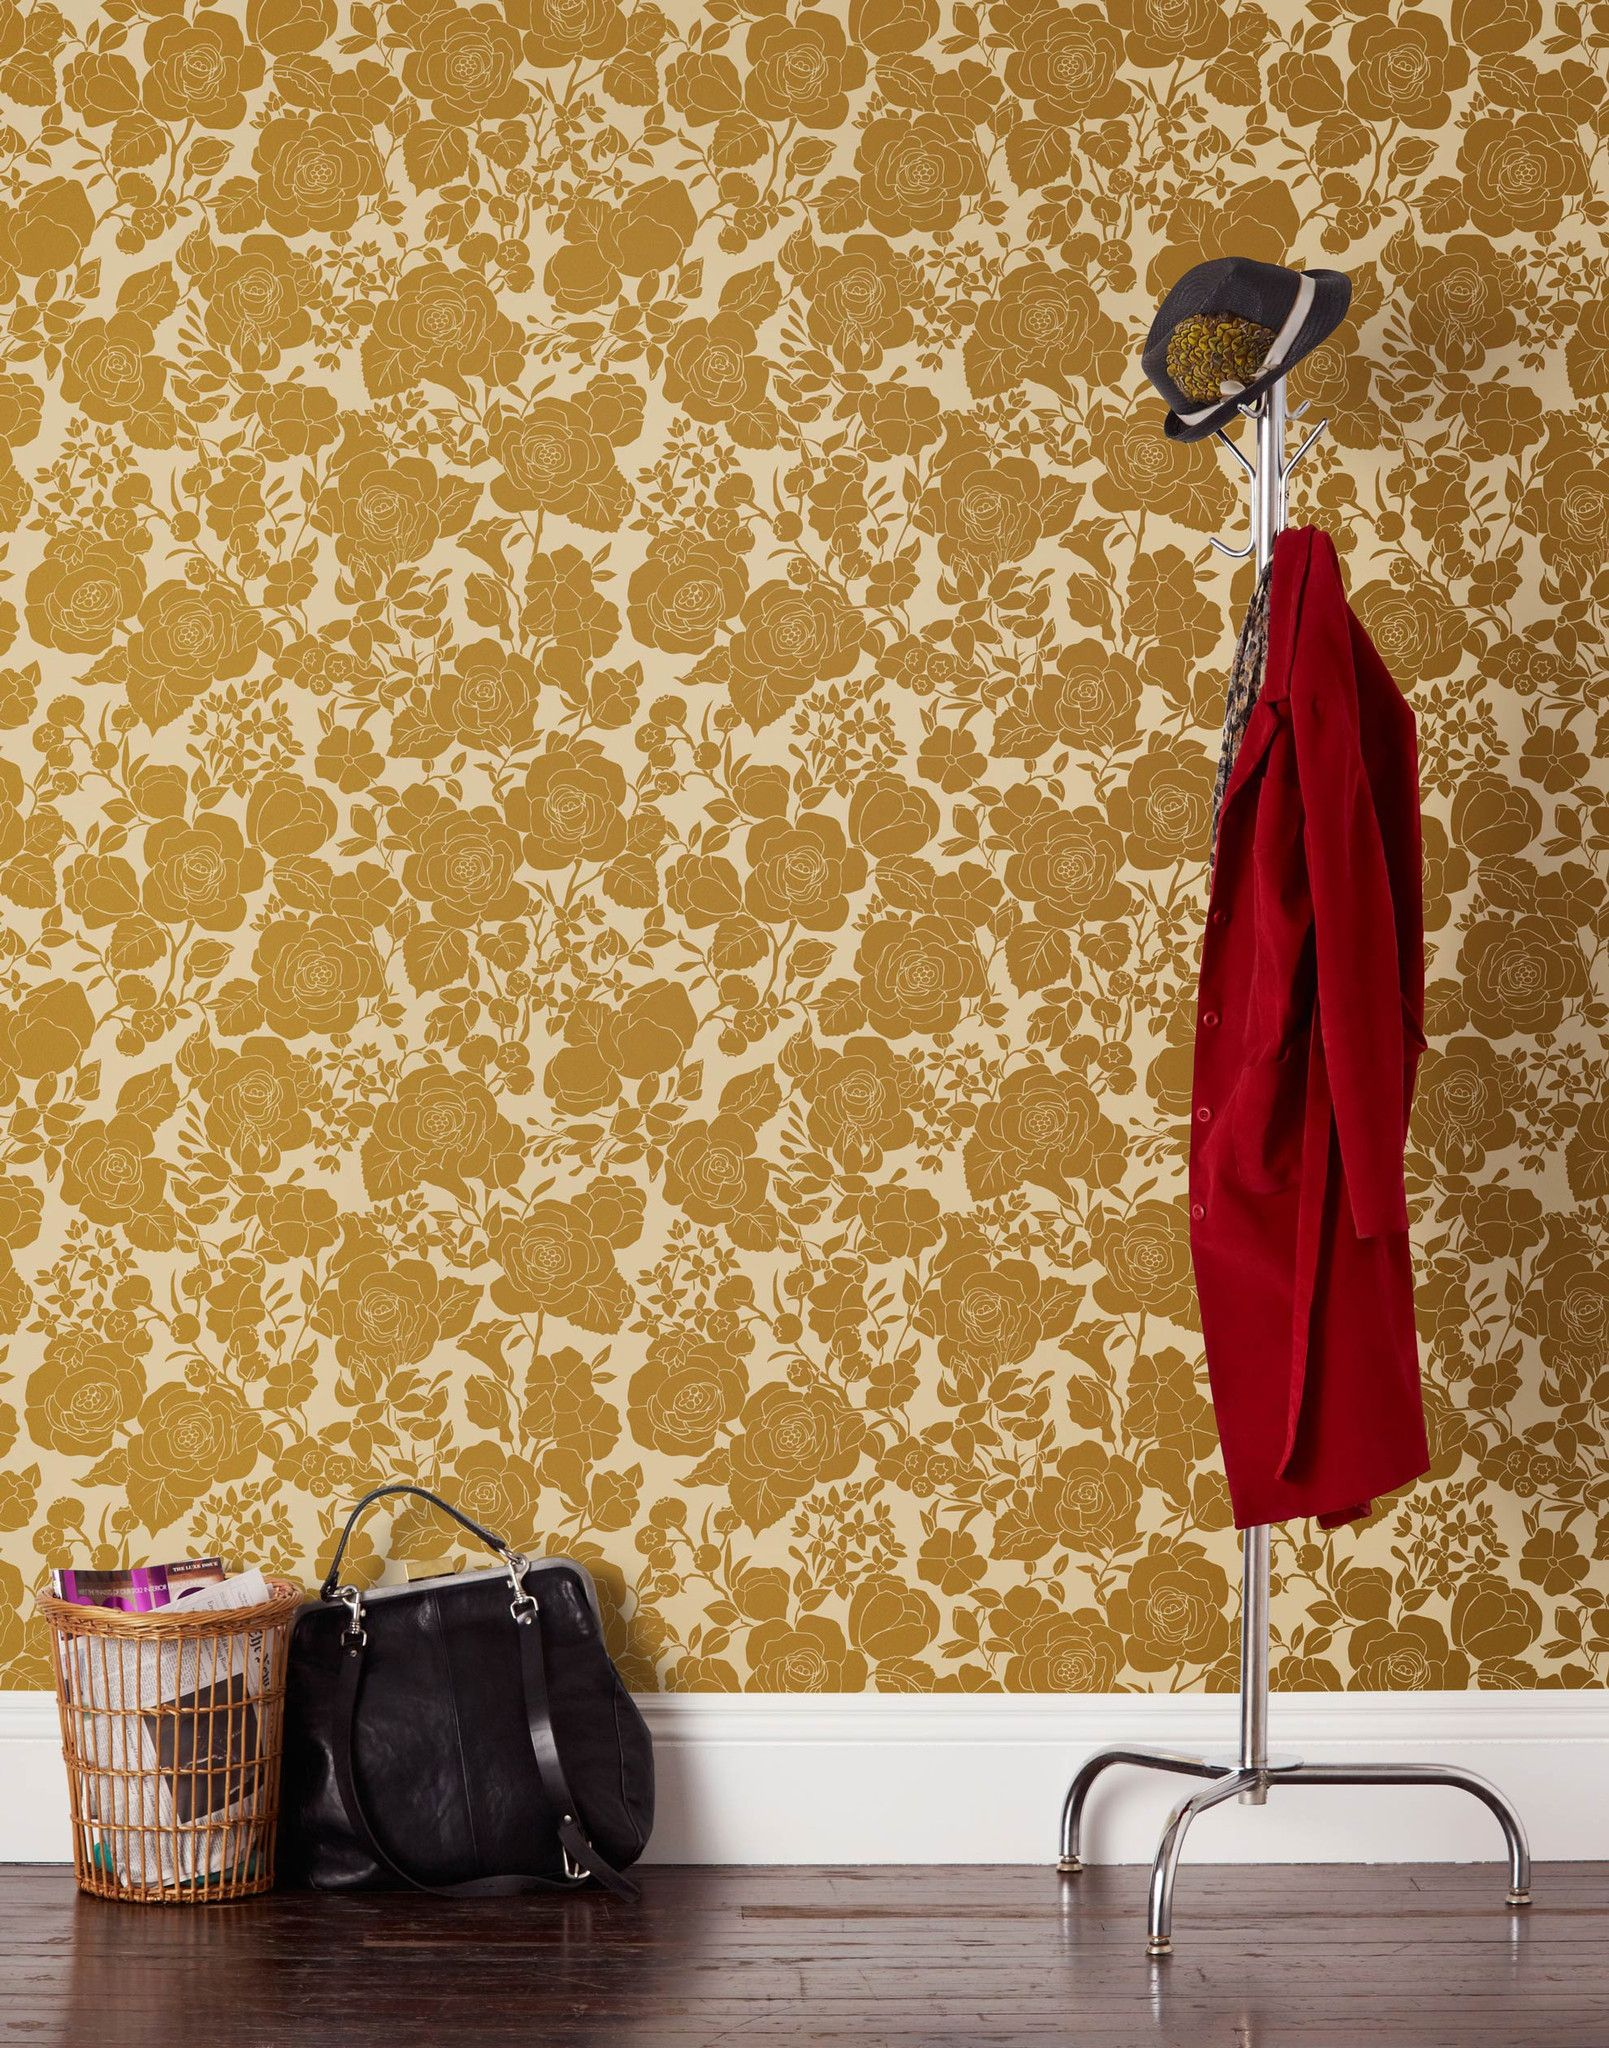 Garden (Cream/Gold) Wallpaper LetsCurate (With images